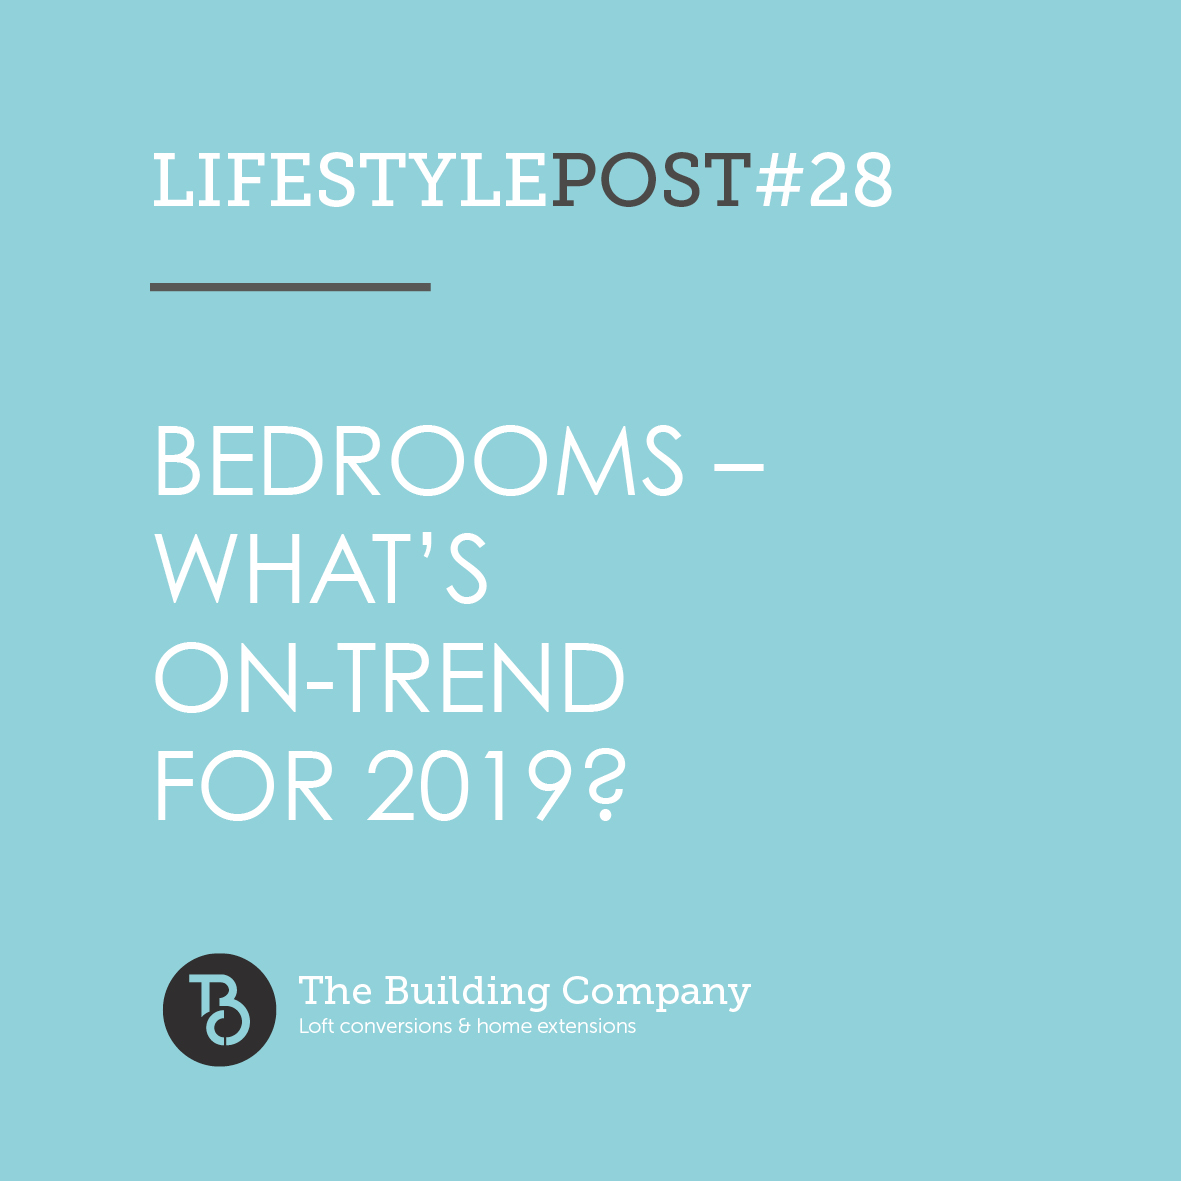 Bedrooms – what's on-trend in North London and East Finchley for 2019?